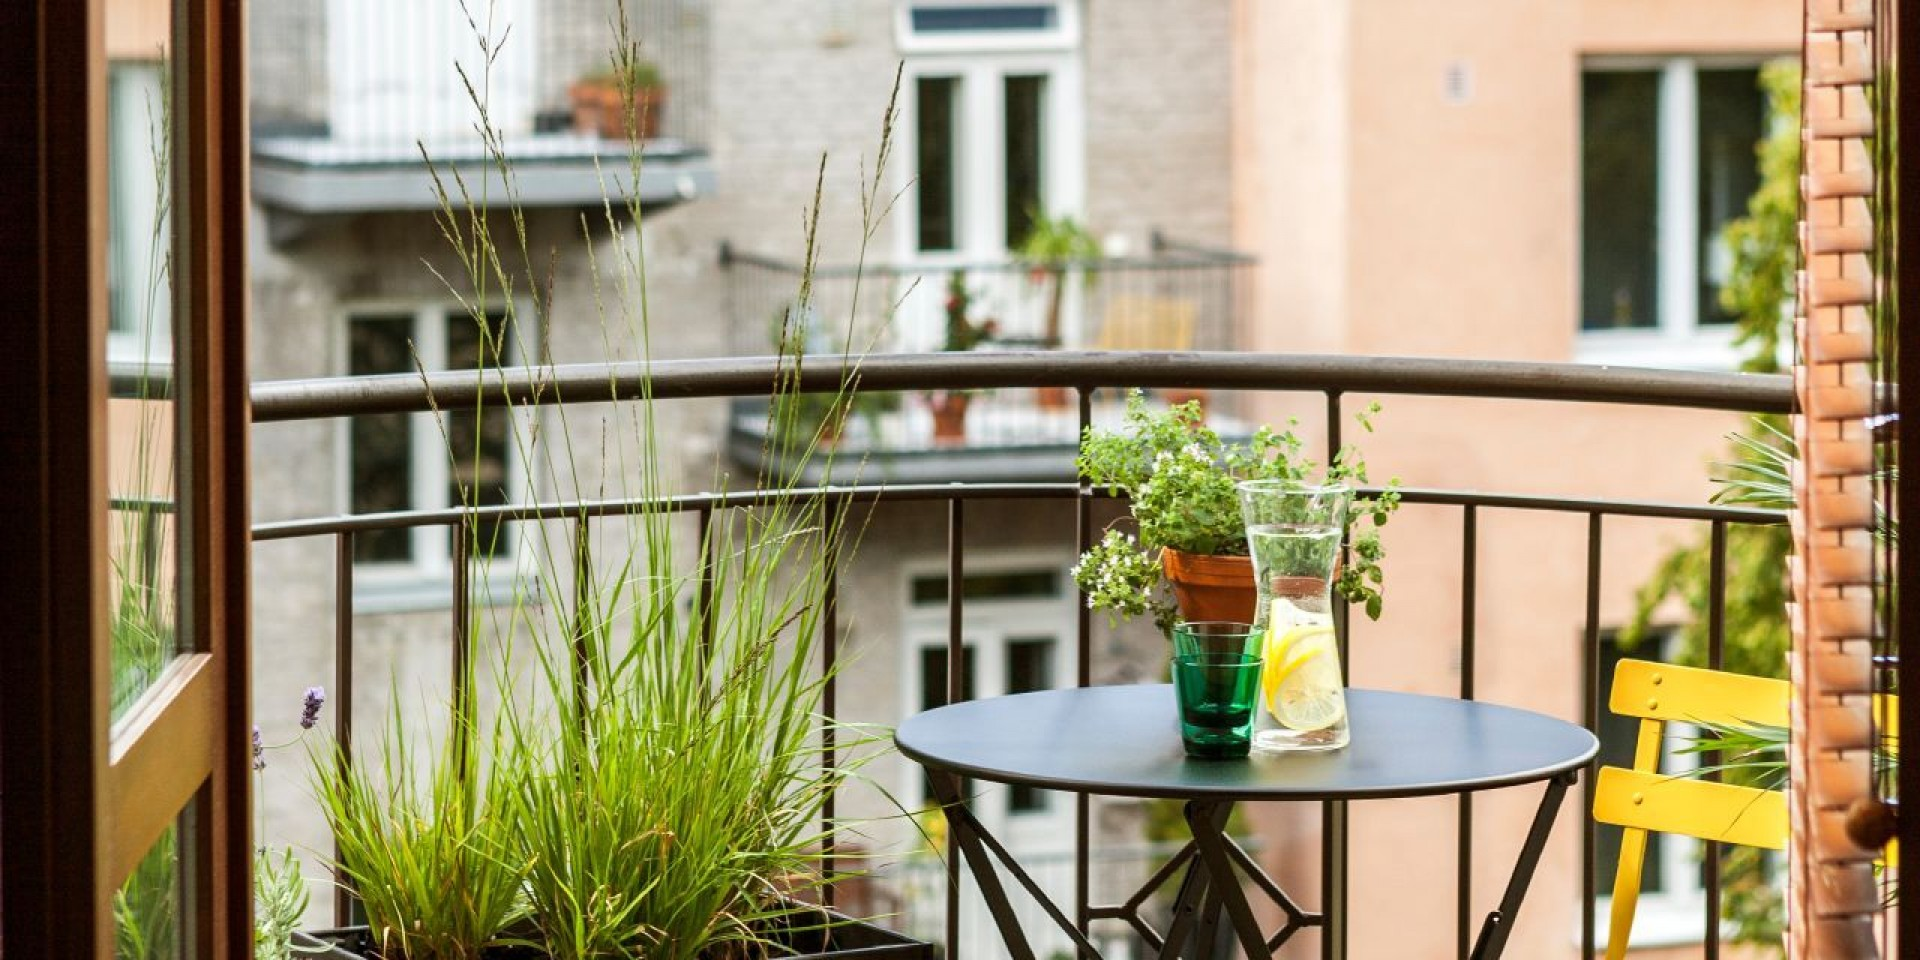 Balcony makeover - creating an urban oasis